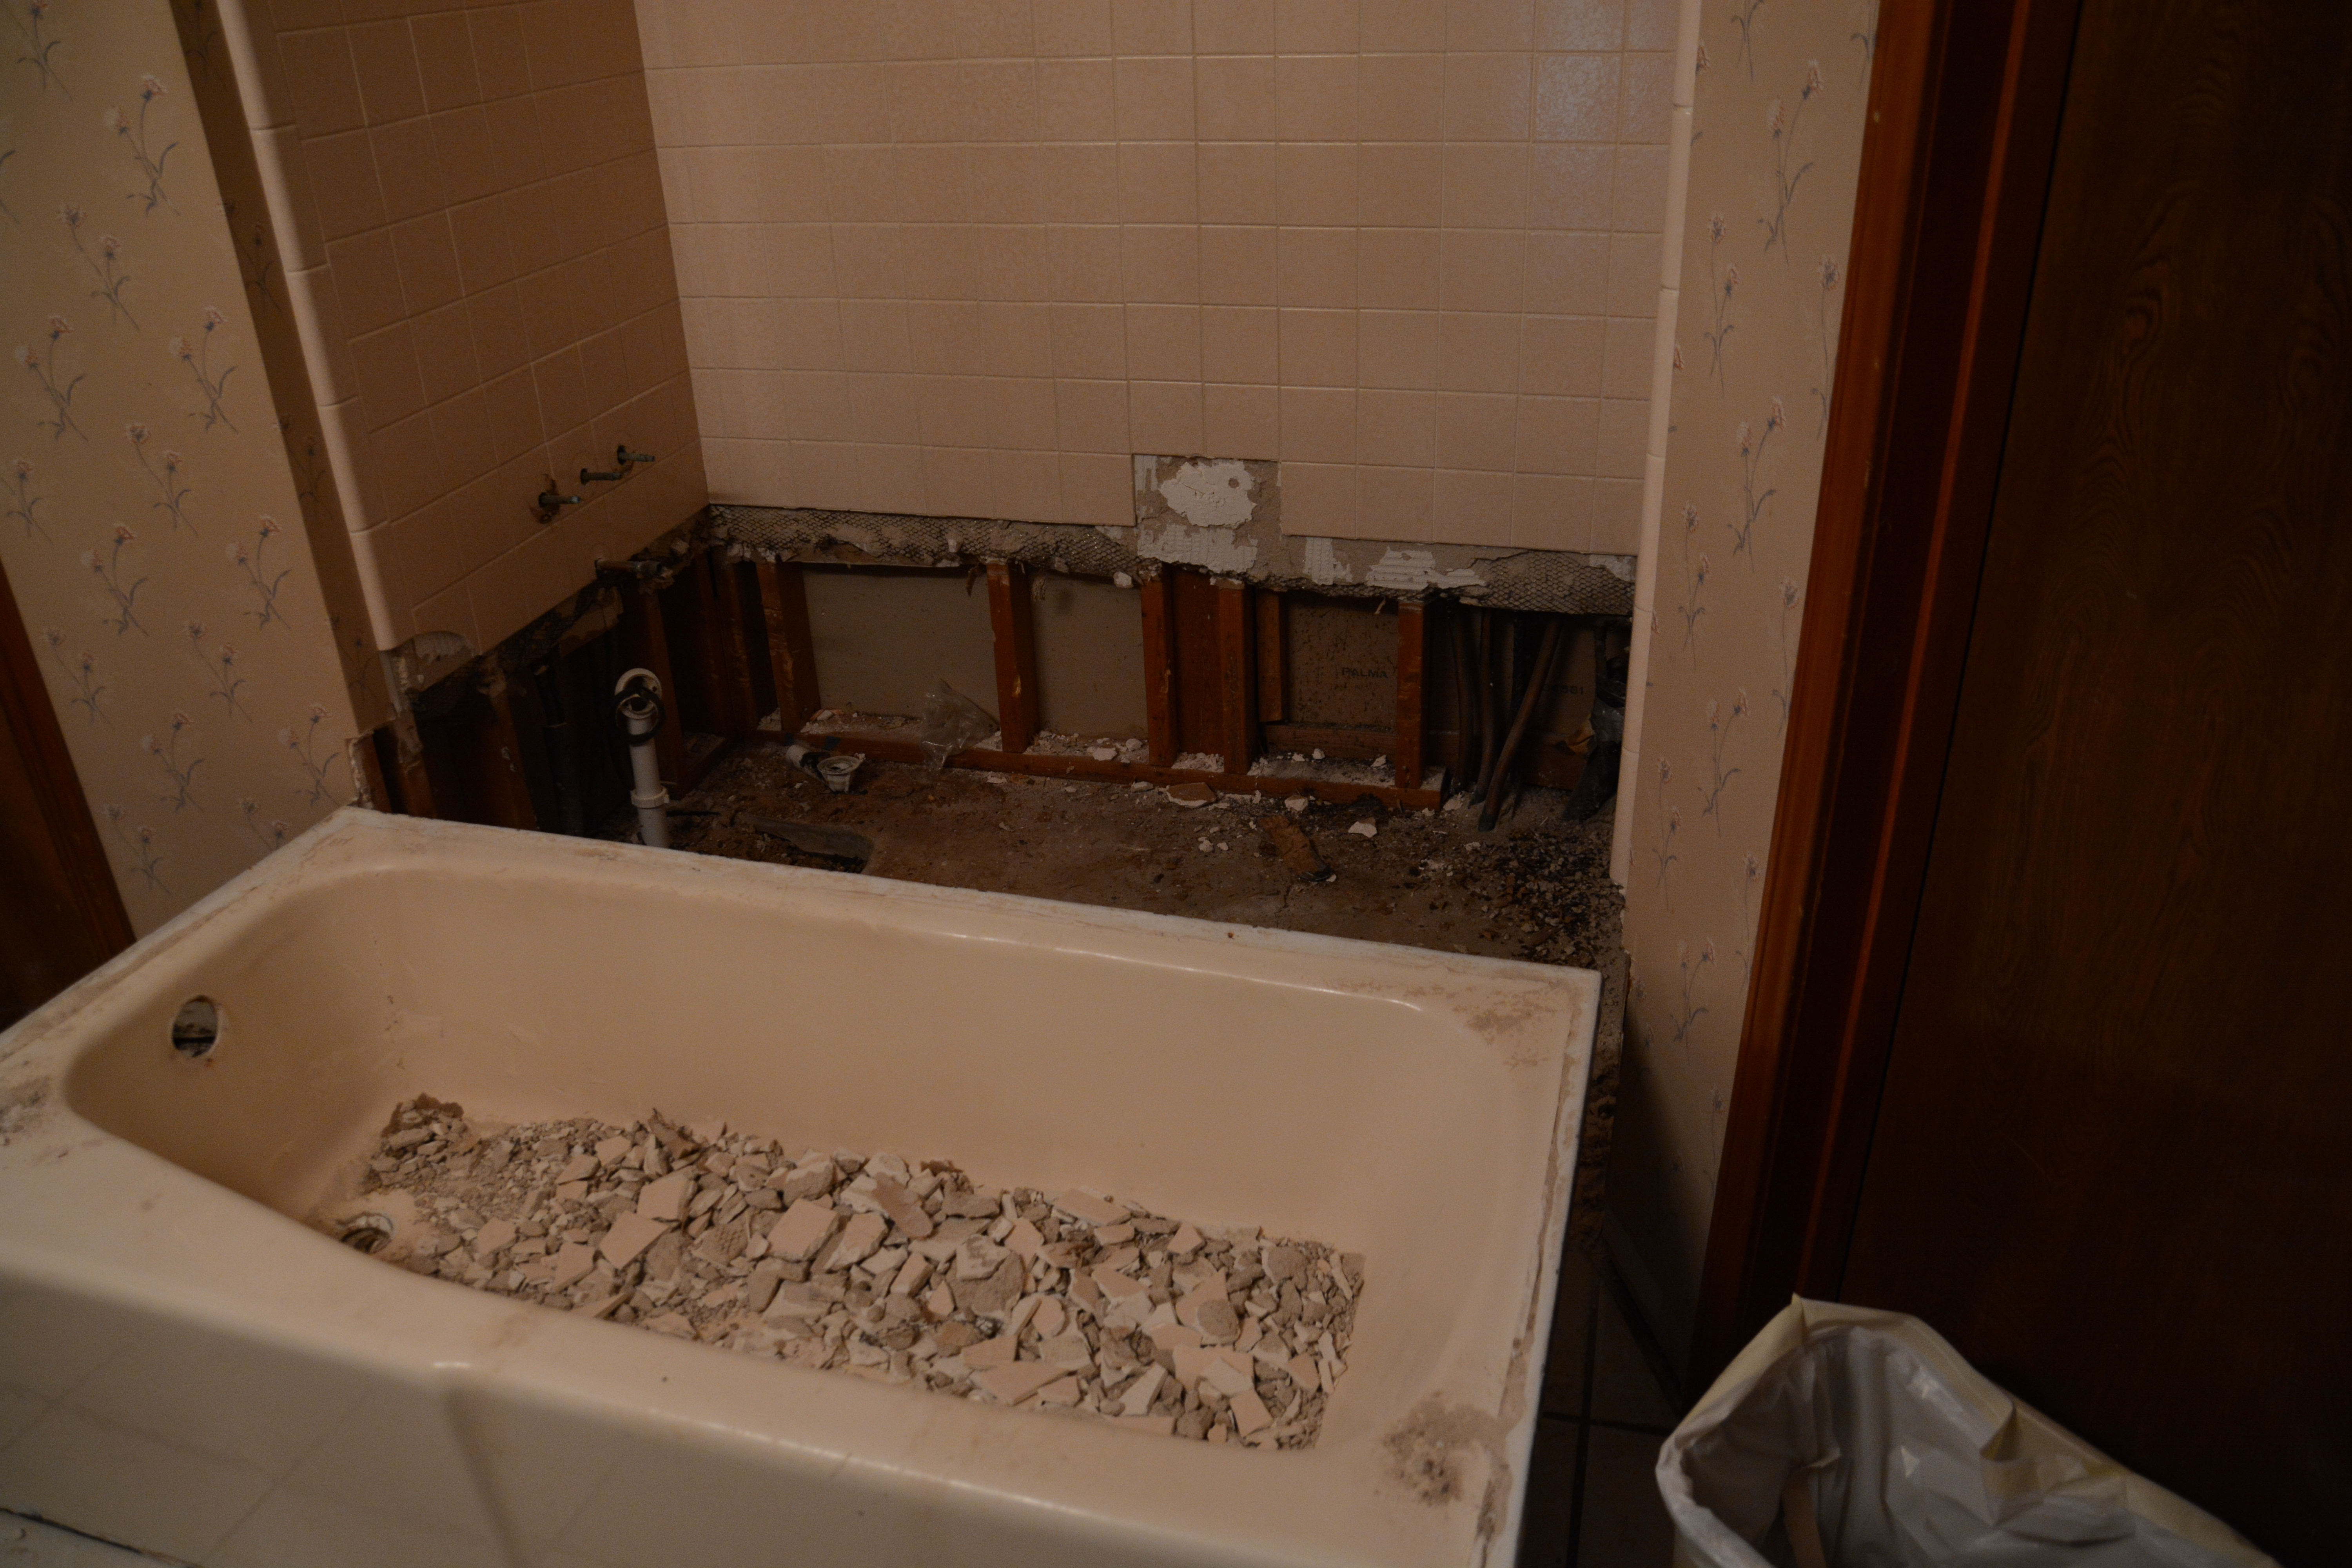 Bathroom Remodel Tub Removal : Remodeling the bath part removing tub life and day